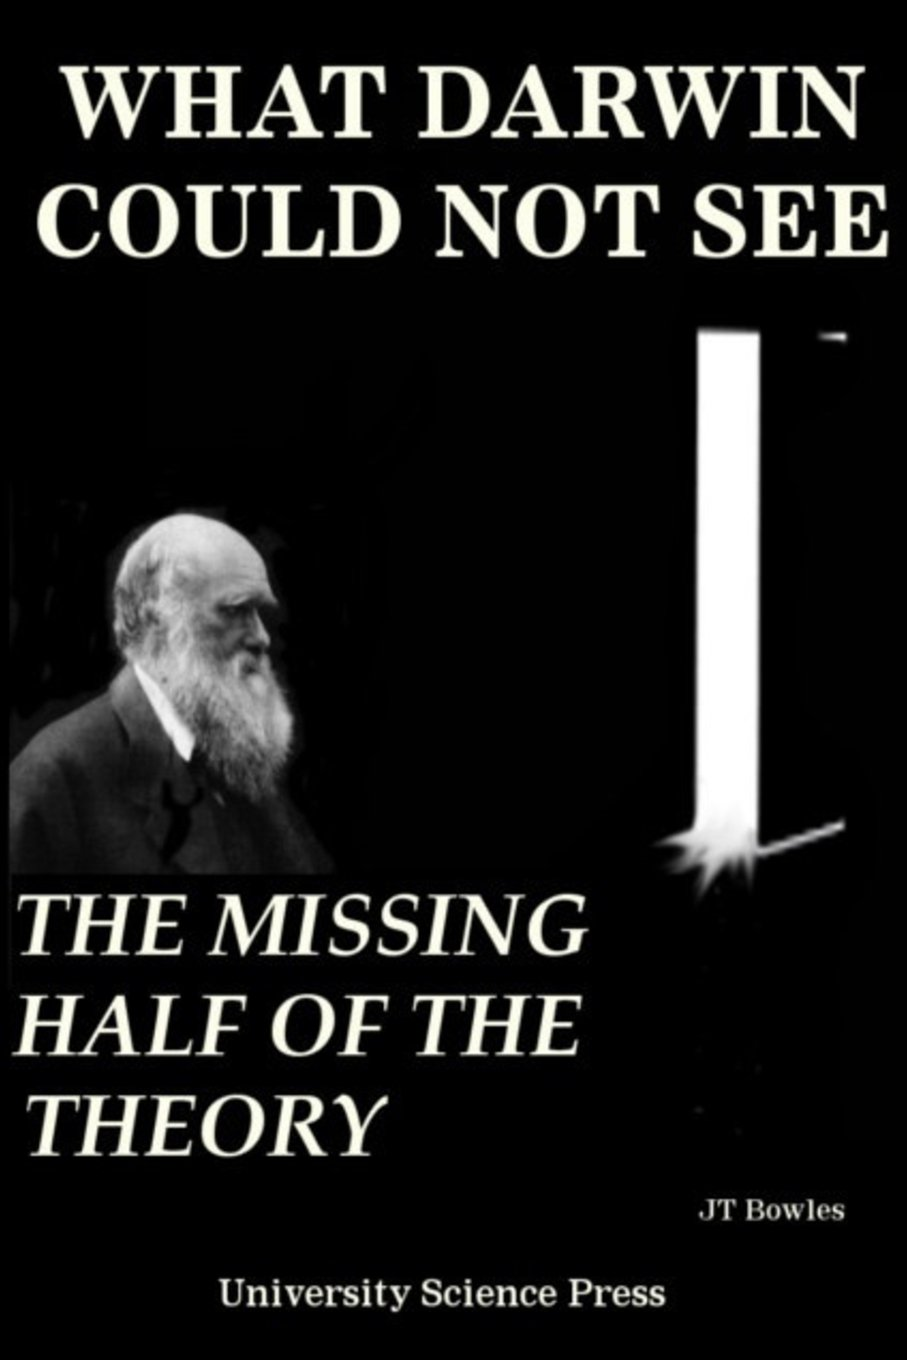 What Darwin Could Not See-The Missing Half of the Theory - Standard  Edition: Jeff T. Bowles: 9781539355229: Amazon.com: Books